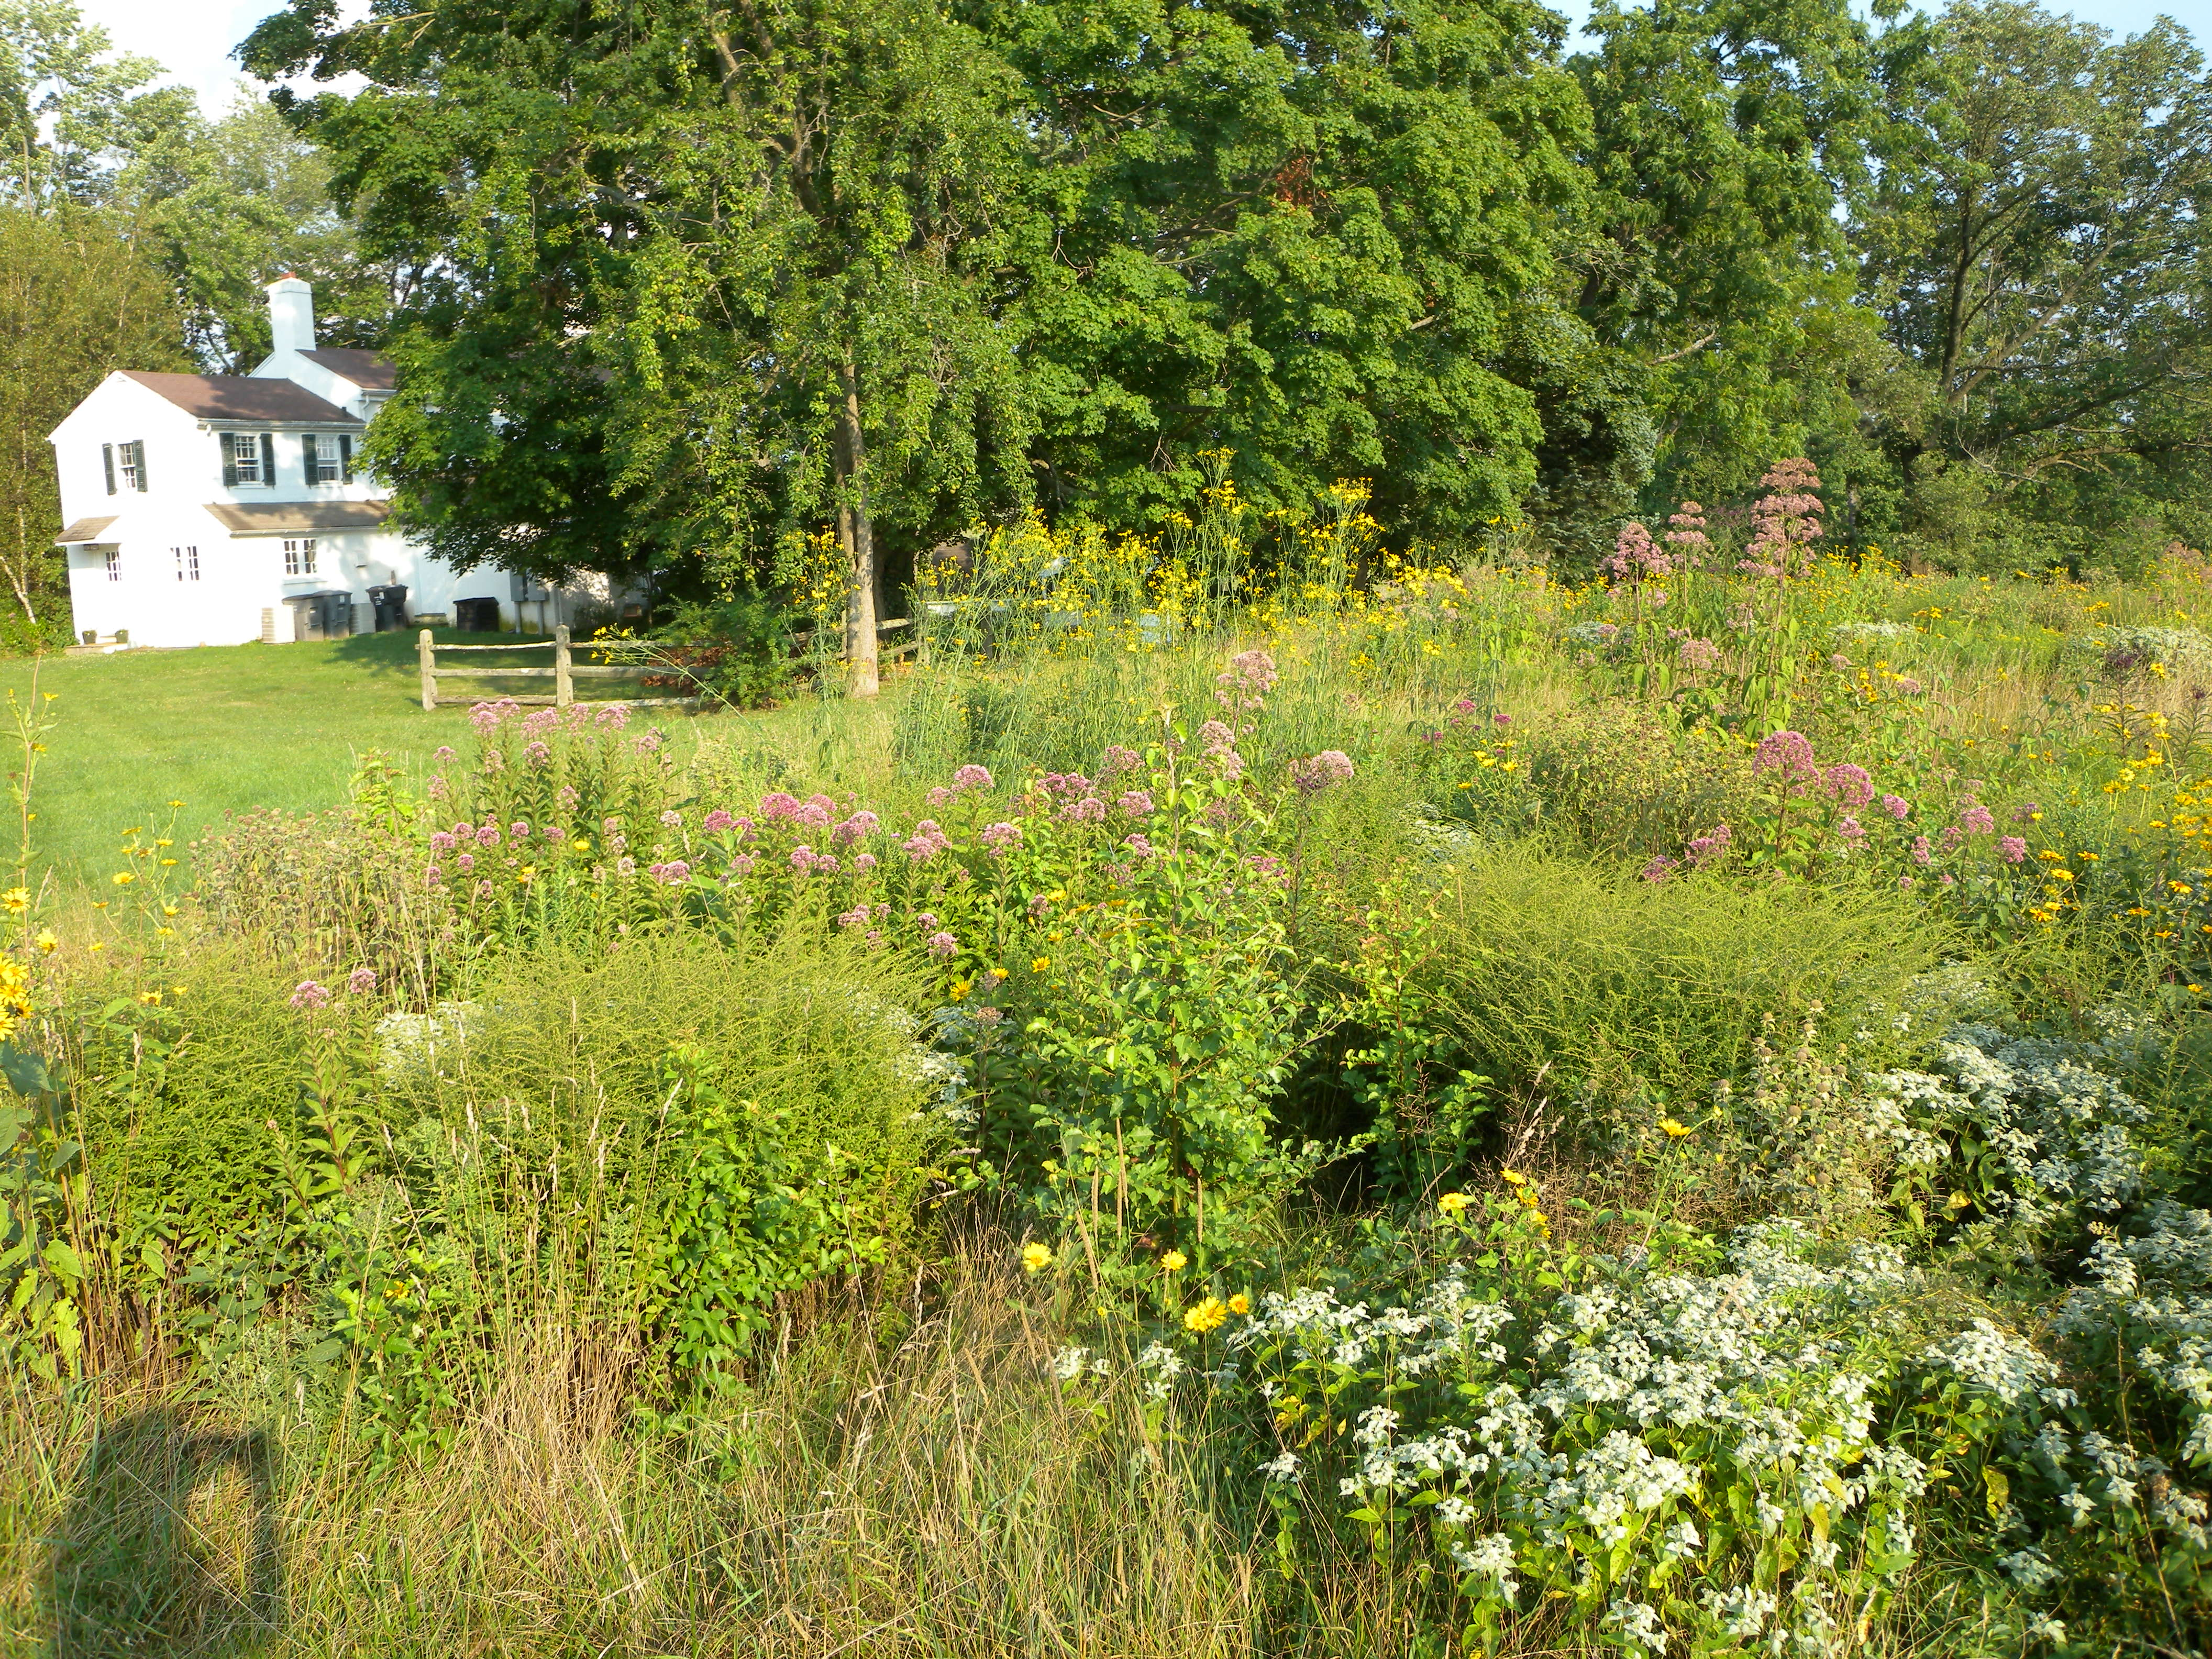 """The """"yard"""" at the Willistown Conservation Trust's office property has been partly converted to unmowed wildflower meadows, an example of sharing your property with wildlife."""